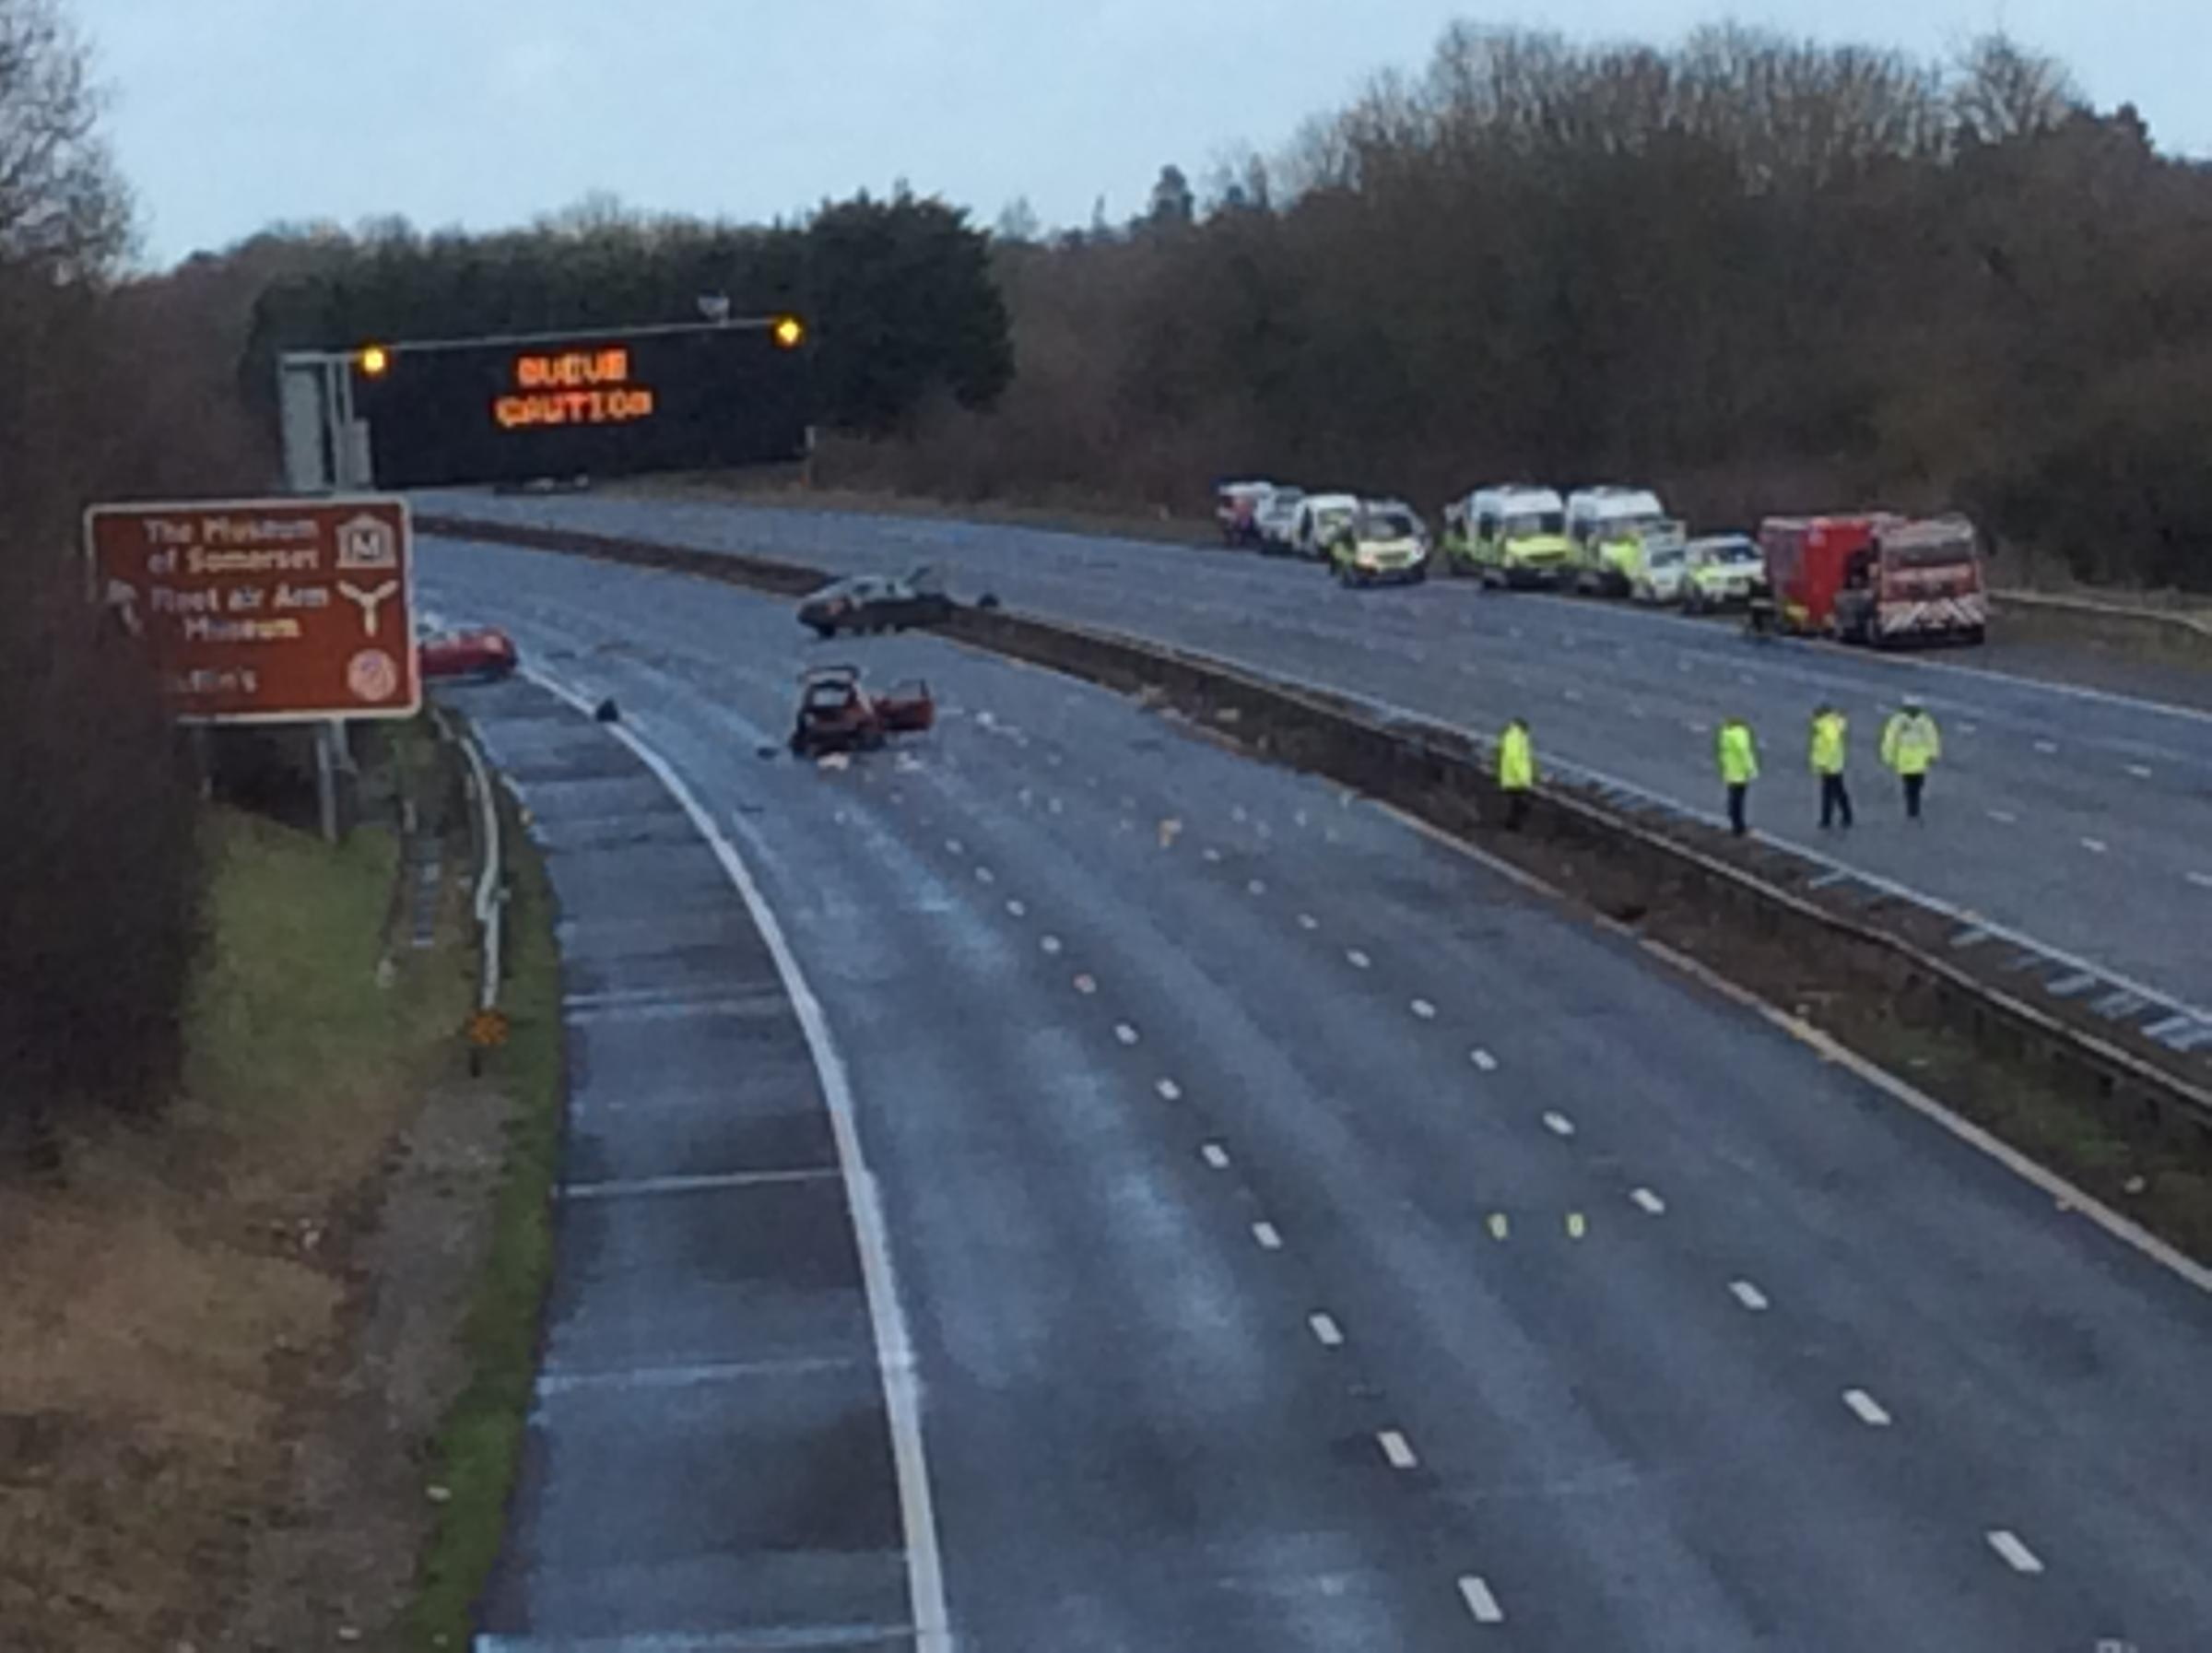 VIDEOS: 10 injured in M5 crash - one woman dead, two in life-threatening condition